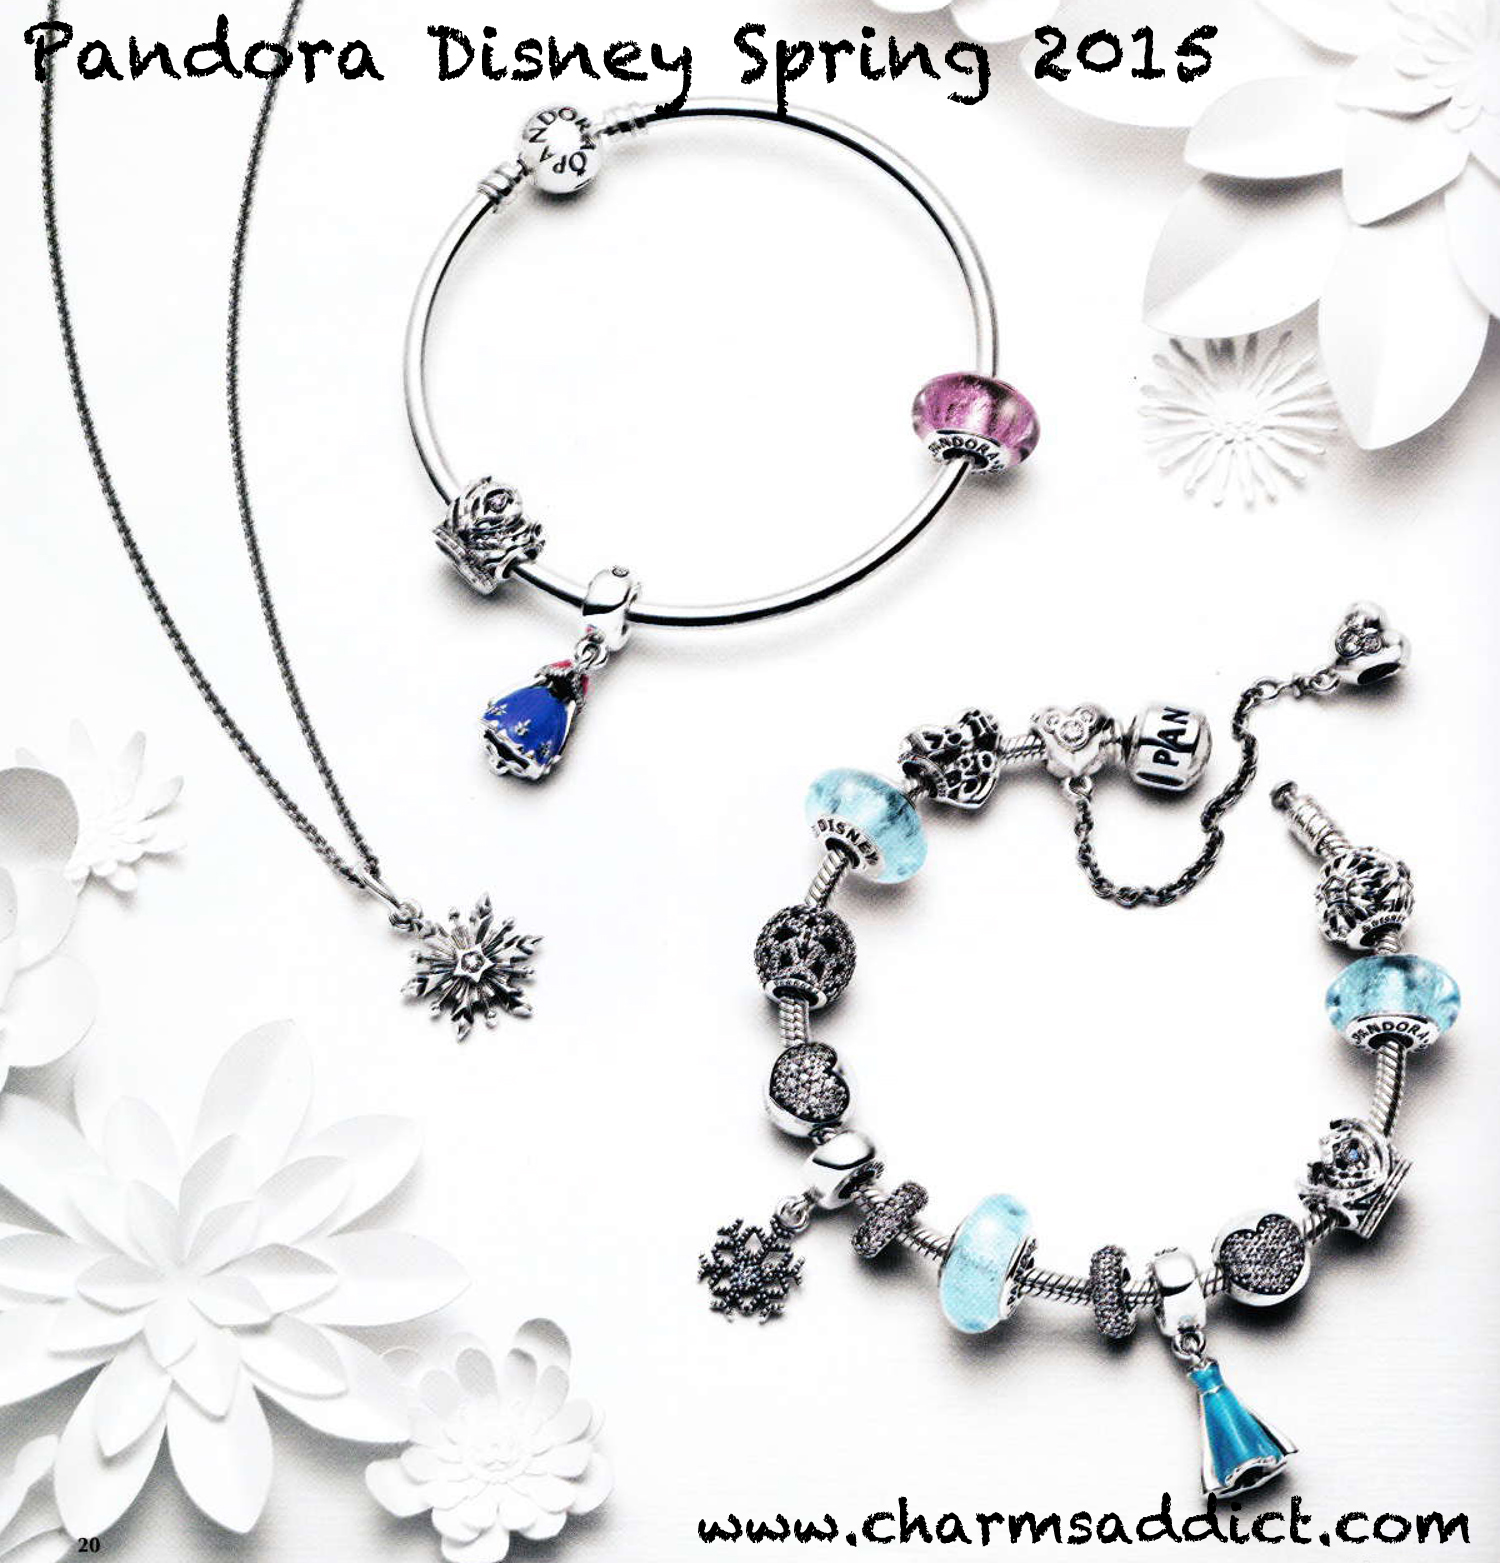 Pandora Disney Spring 2015 Prices Charms Addict